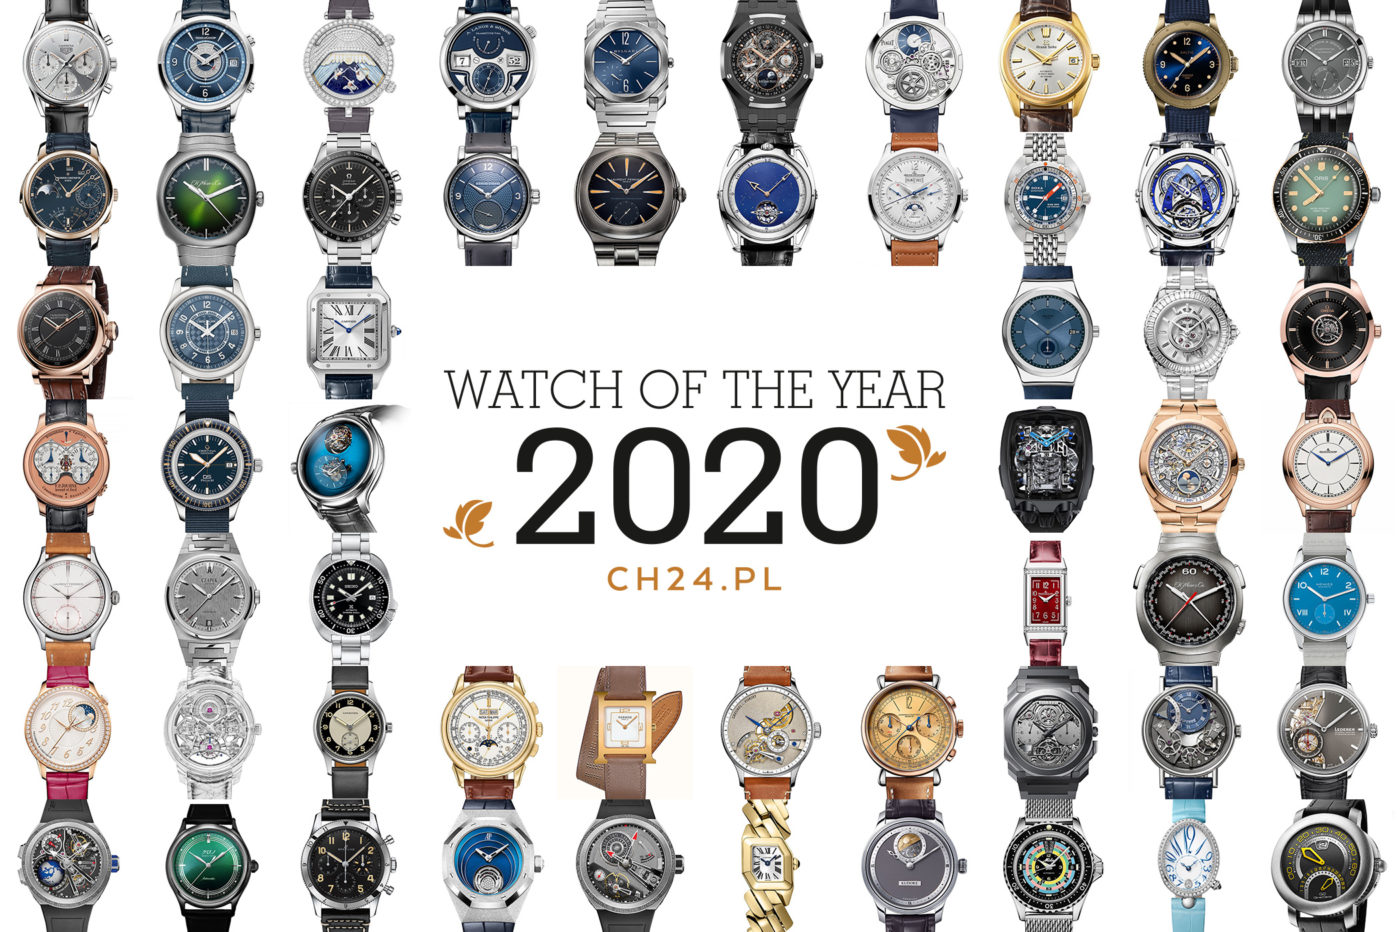 WATCH OF THE YEAR 2020